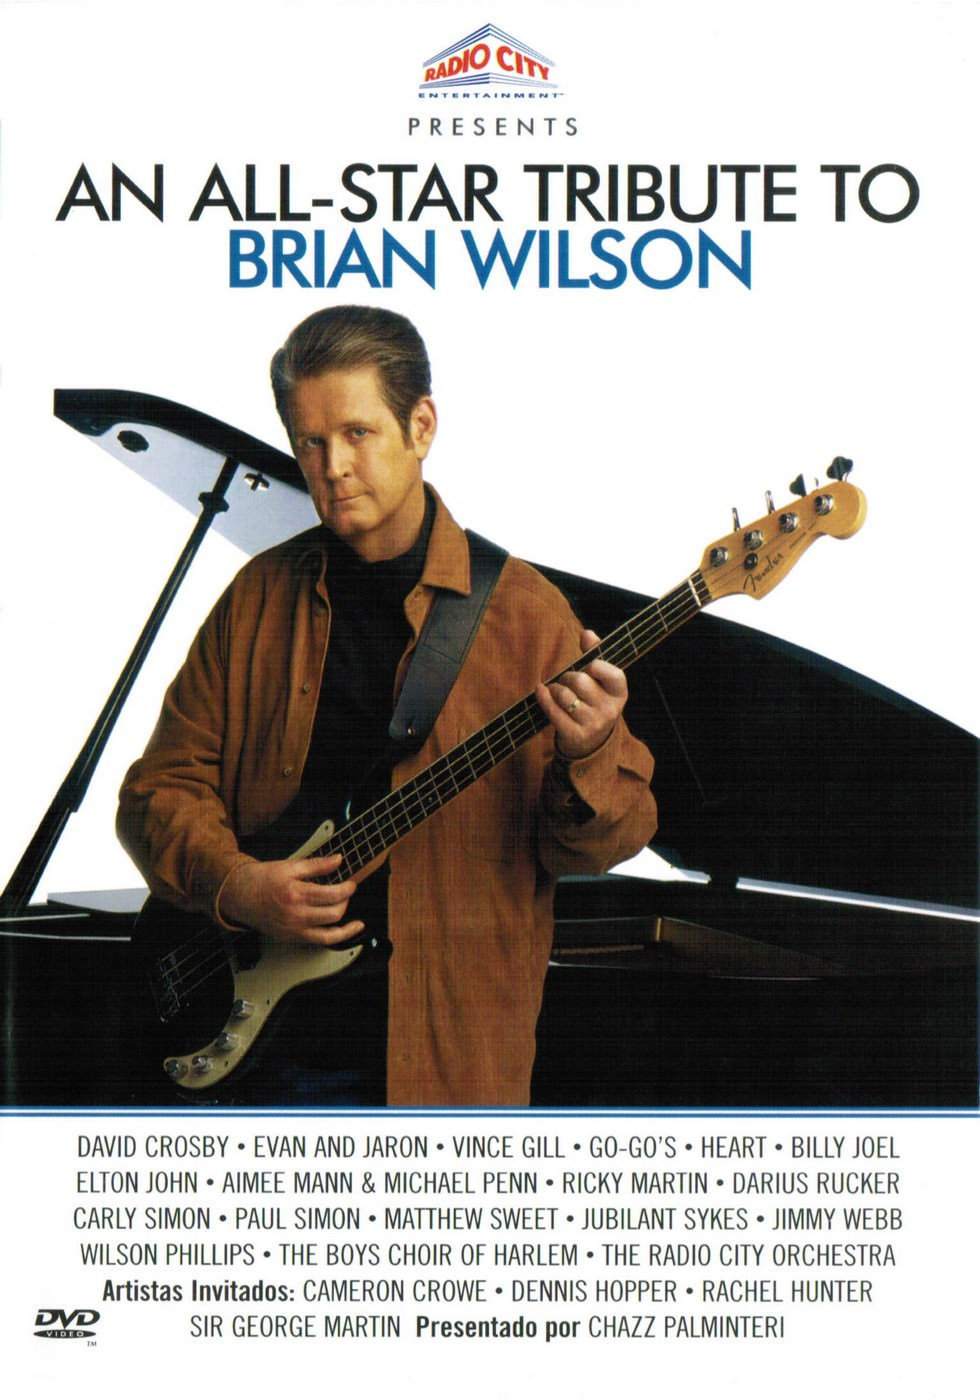 An All-Star Tribute To Brian Wilson cover